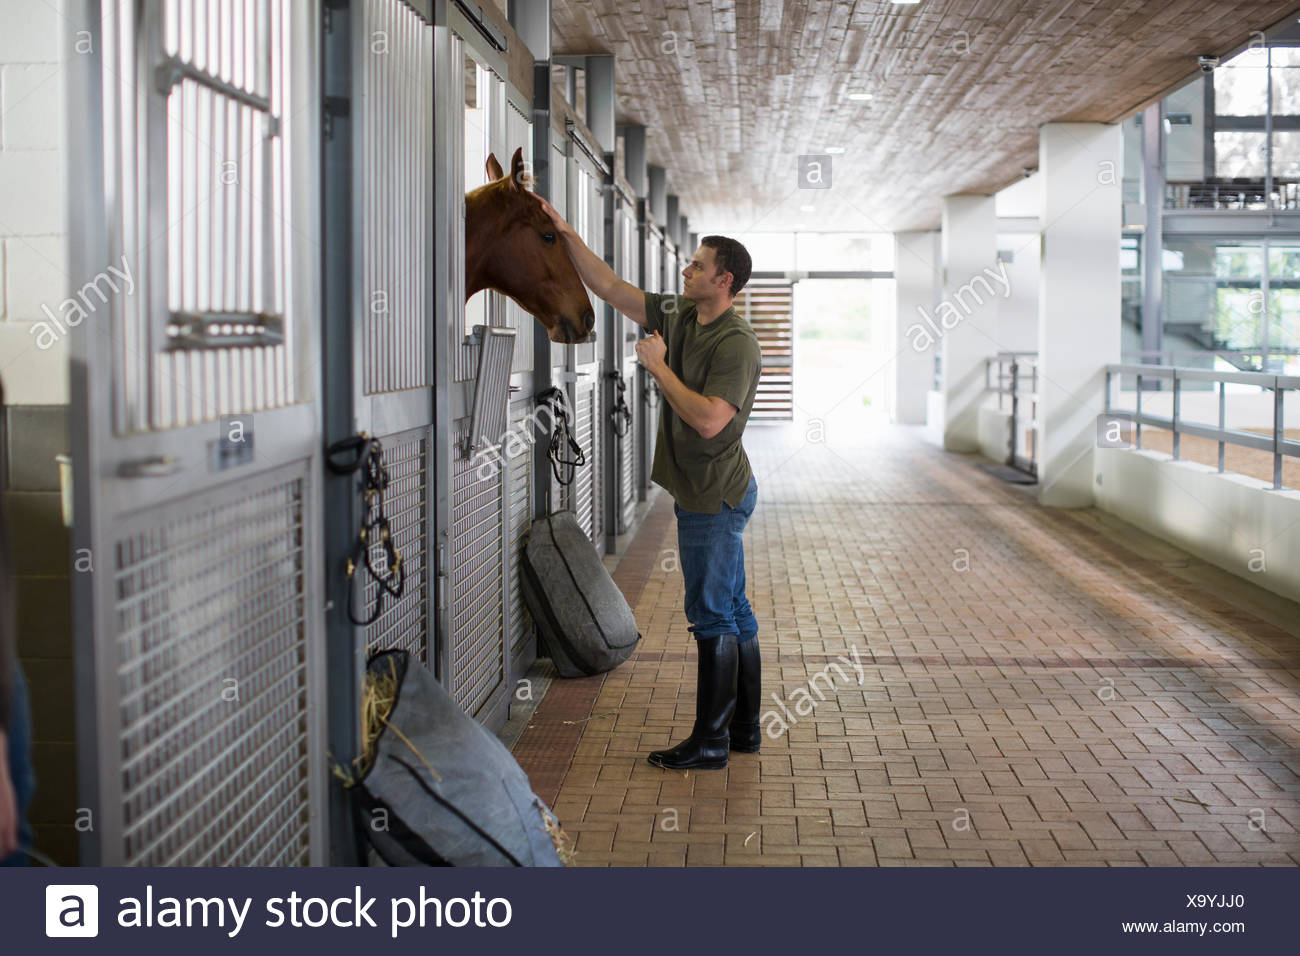 Homme stablehand petting horse en équitation Photo Stock